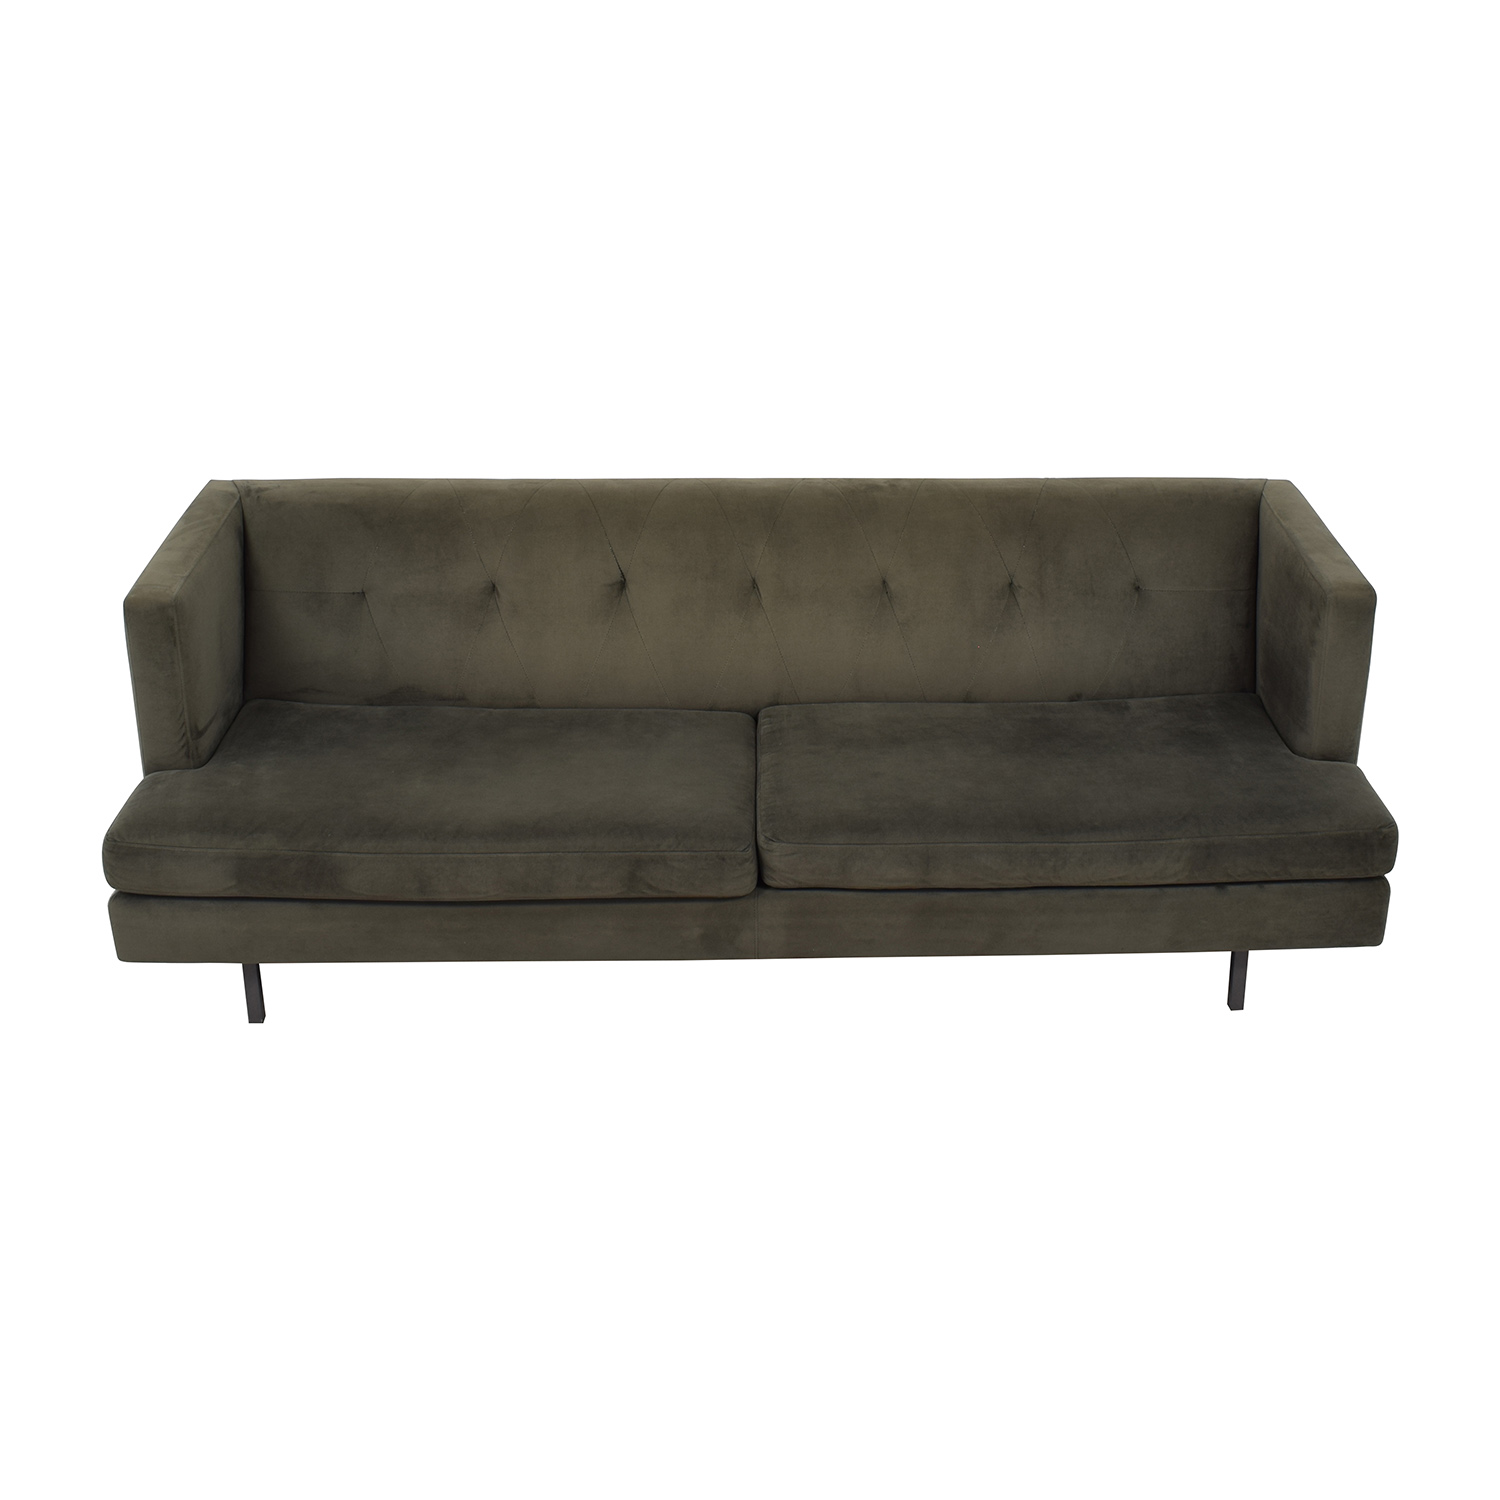 CB2 Avec Grey Sofa with Brushed Stainless Steel Legs / Sofas